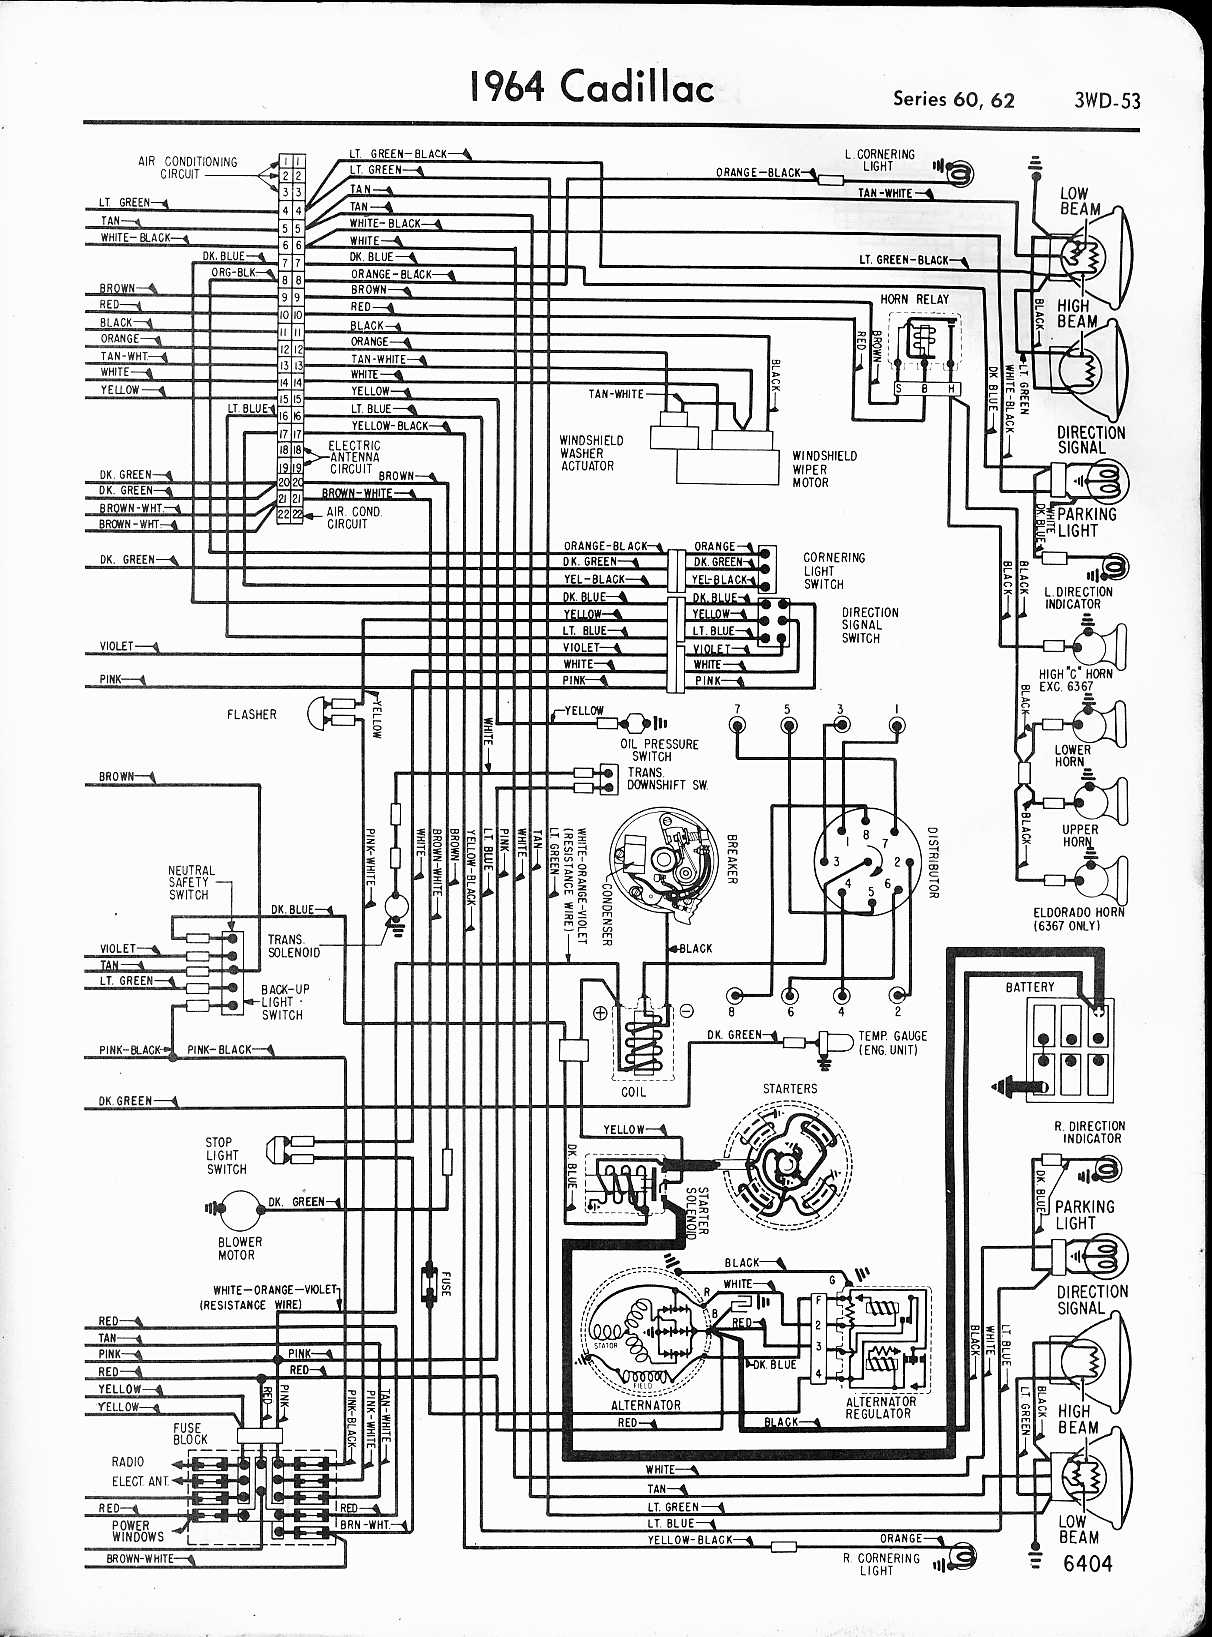 1964 cadillac wiring diagram all wiring diagram cadillac wiring diagrams 1957 1965 1956 ford wiring diagram 1964 cadillac wiring diagram